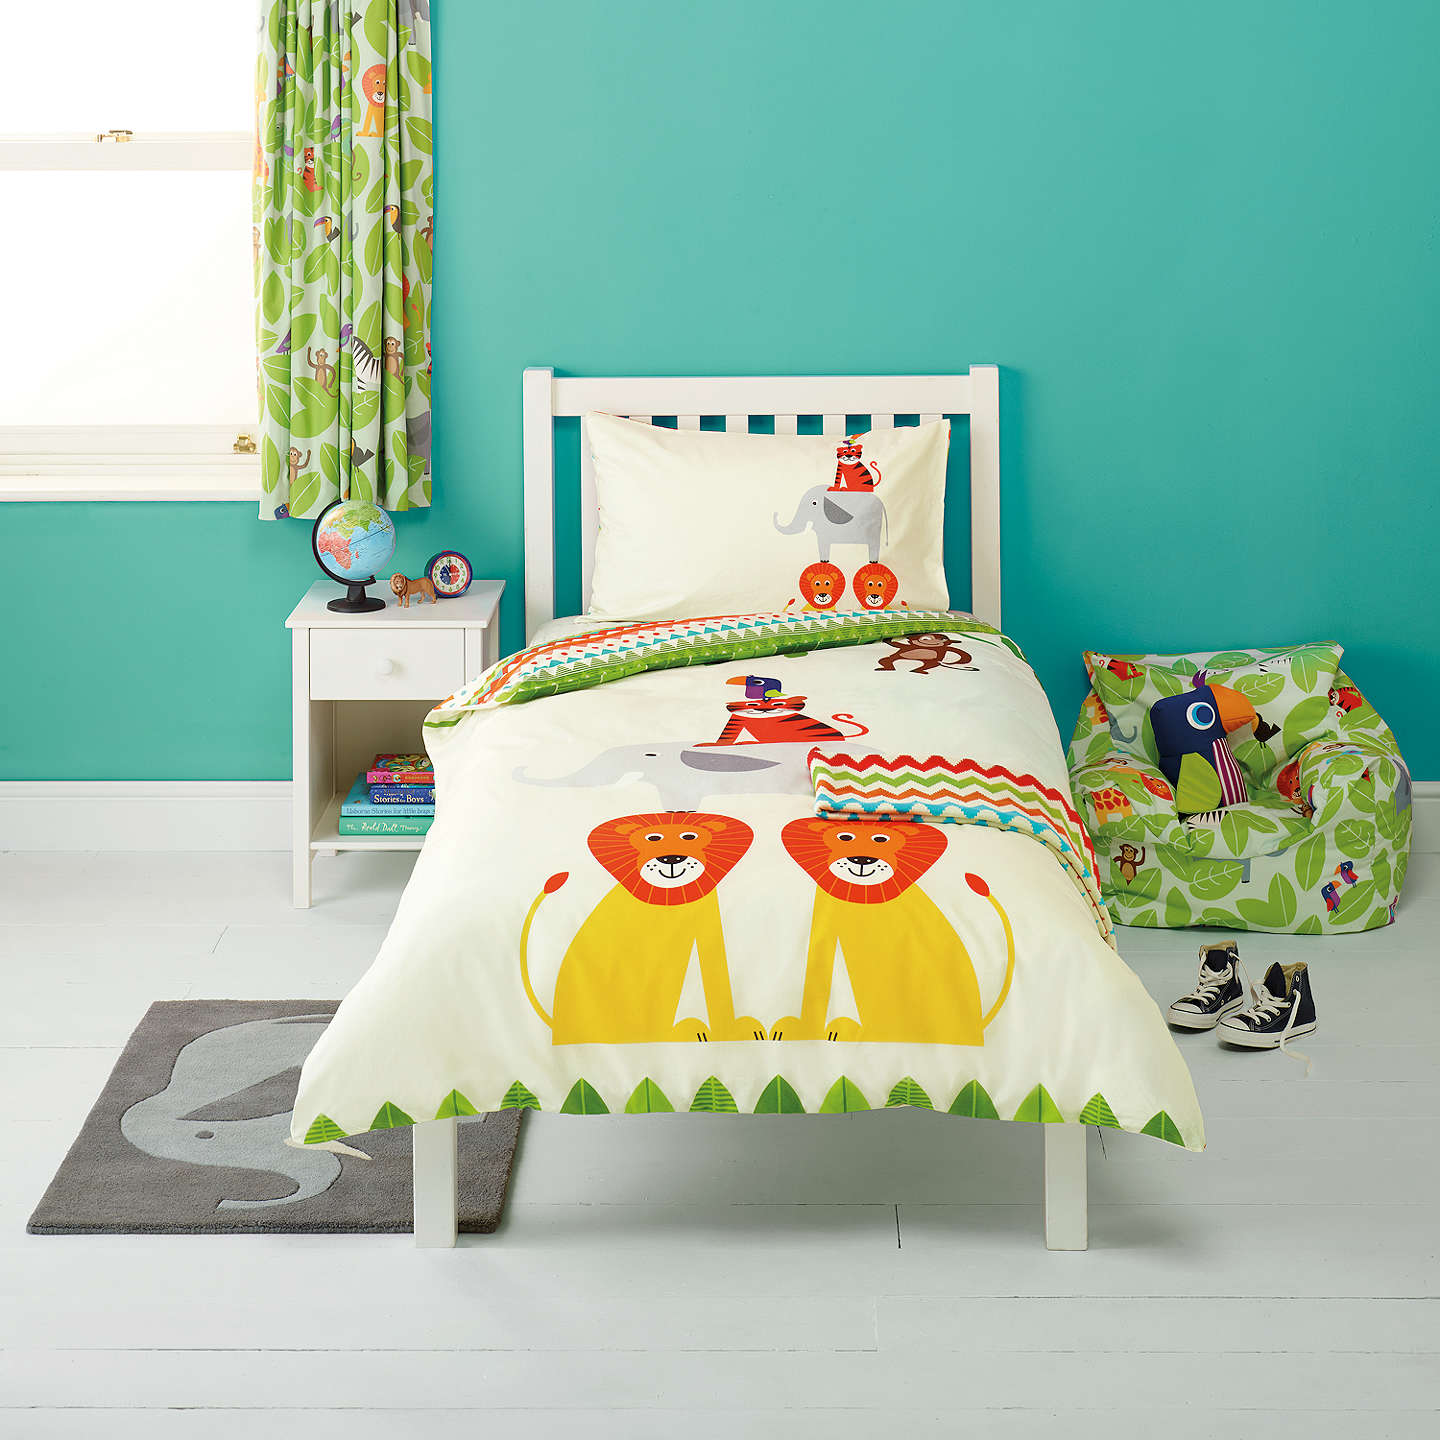 Little Home At John Lewis Animal Fun Duvet Cover And Pillowcase Set Online Johnlewis